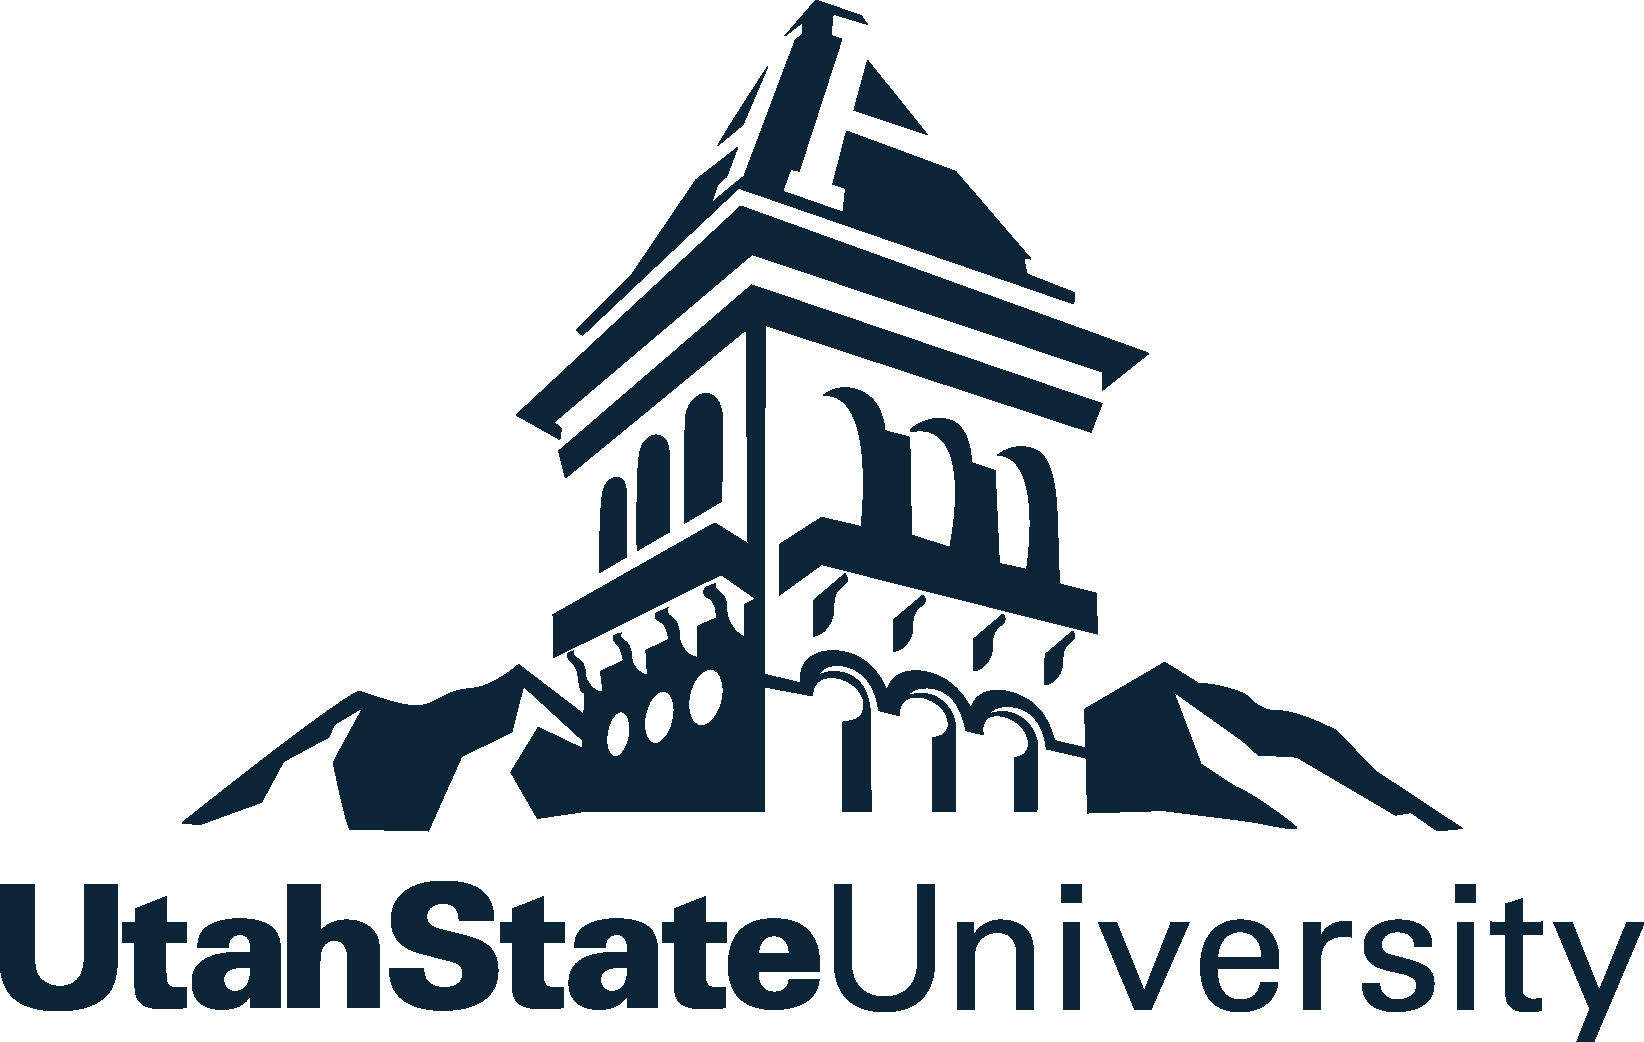 Utah State University Logo and Seal [USU] png